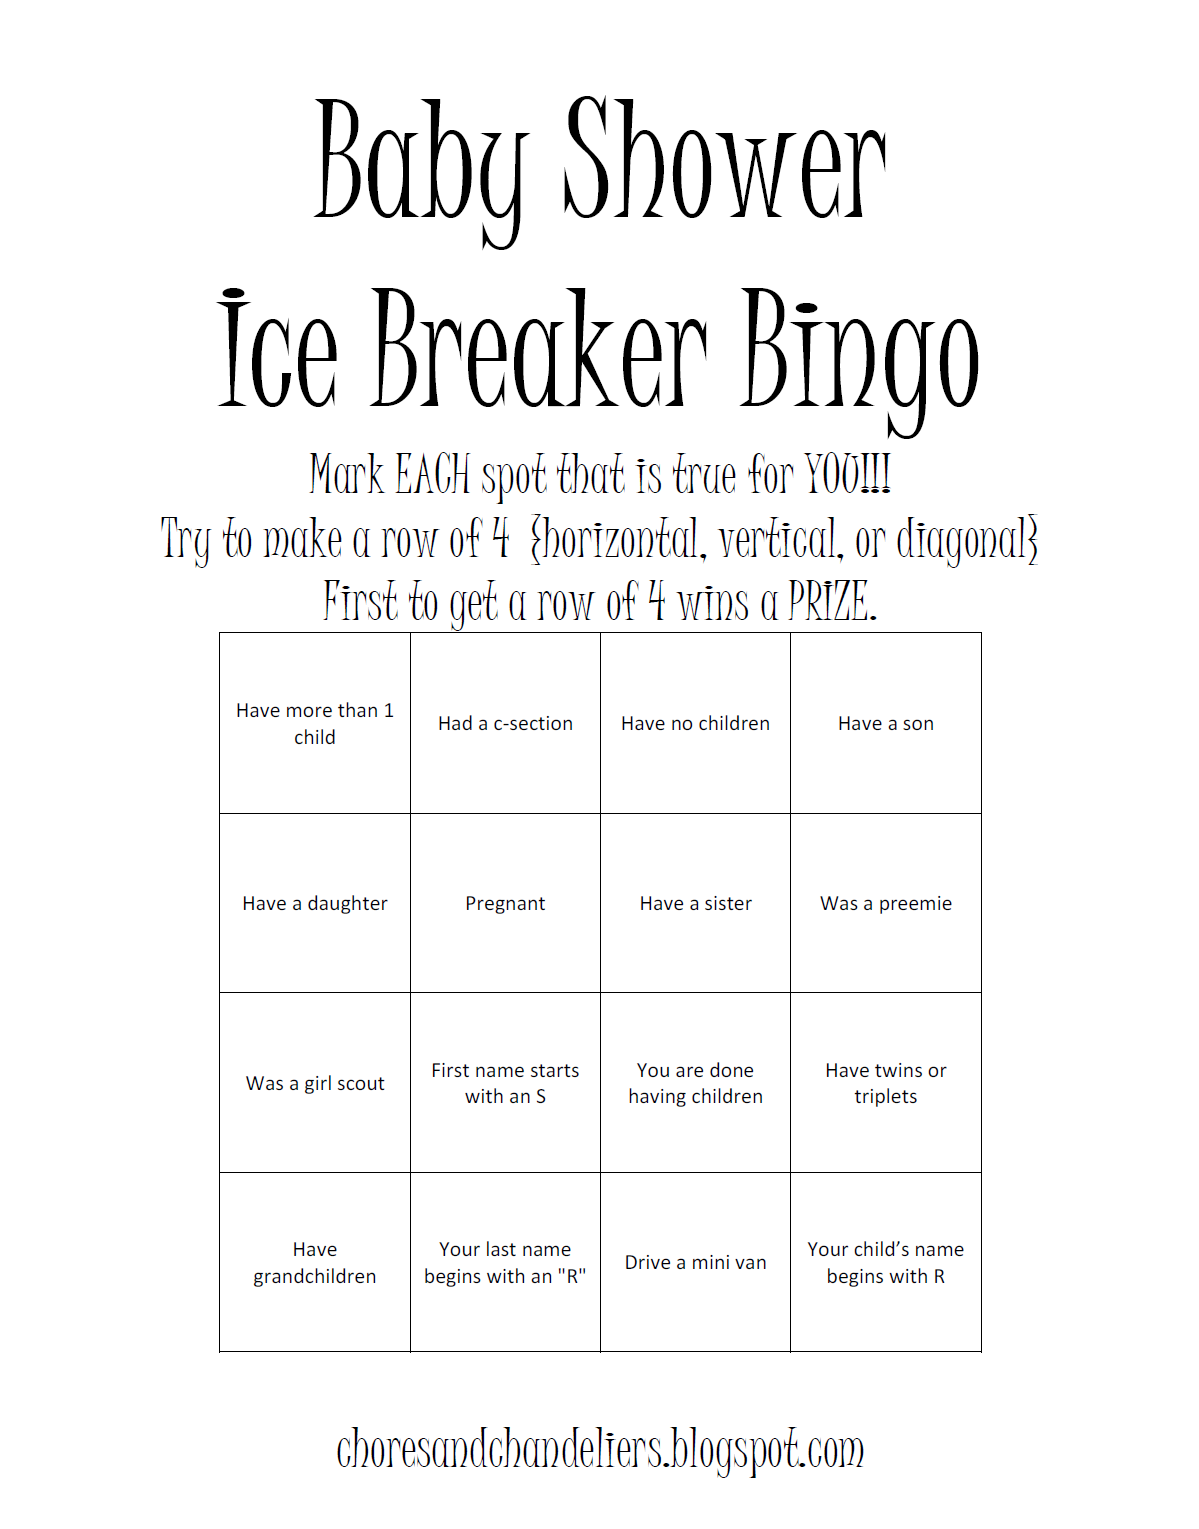 Baby shower game cool for when you 39 re having guests that for Ice breaker bingo template